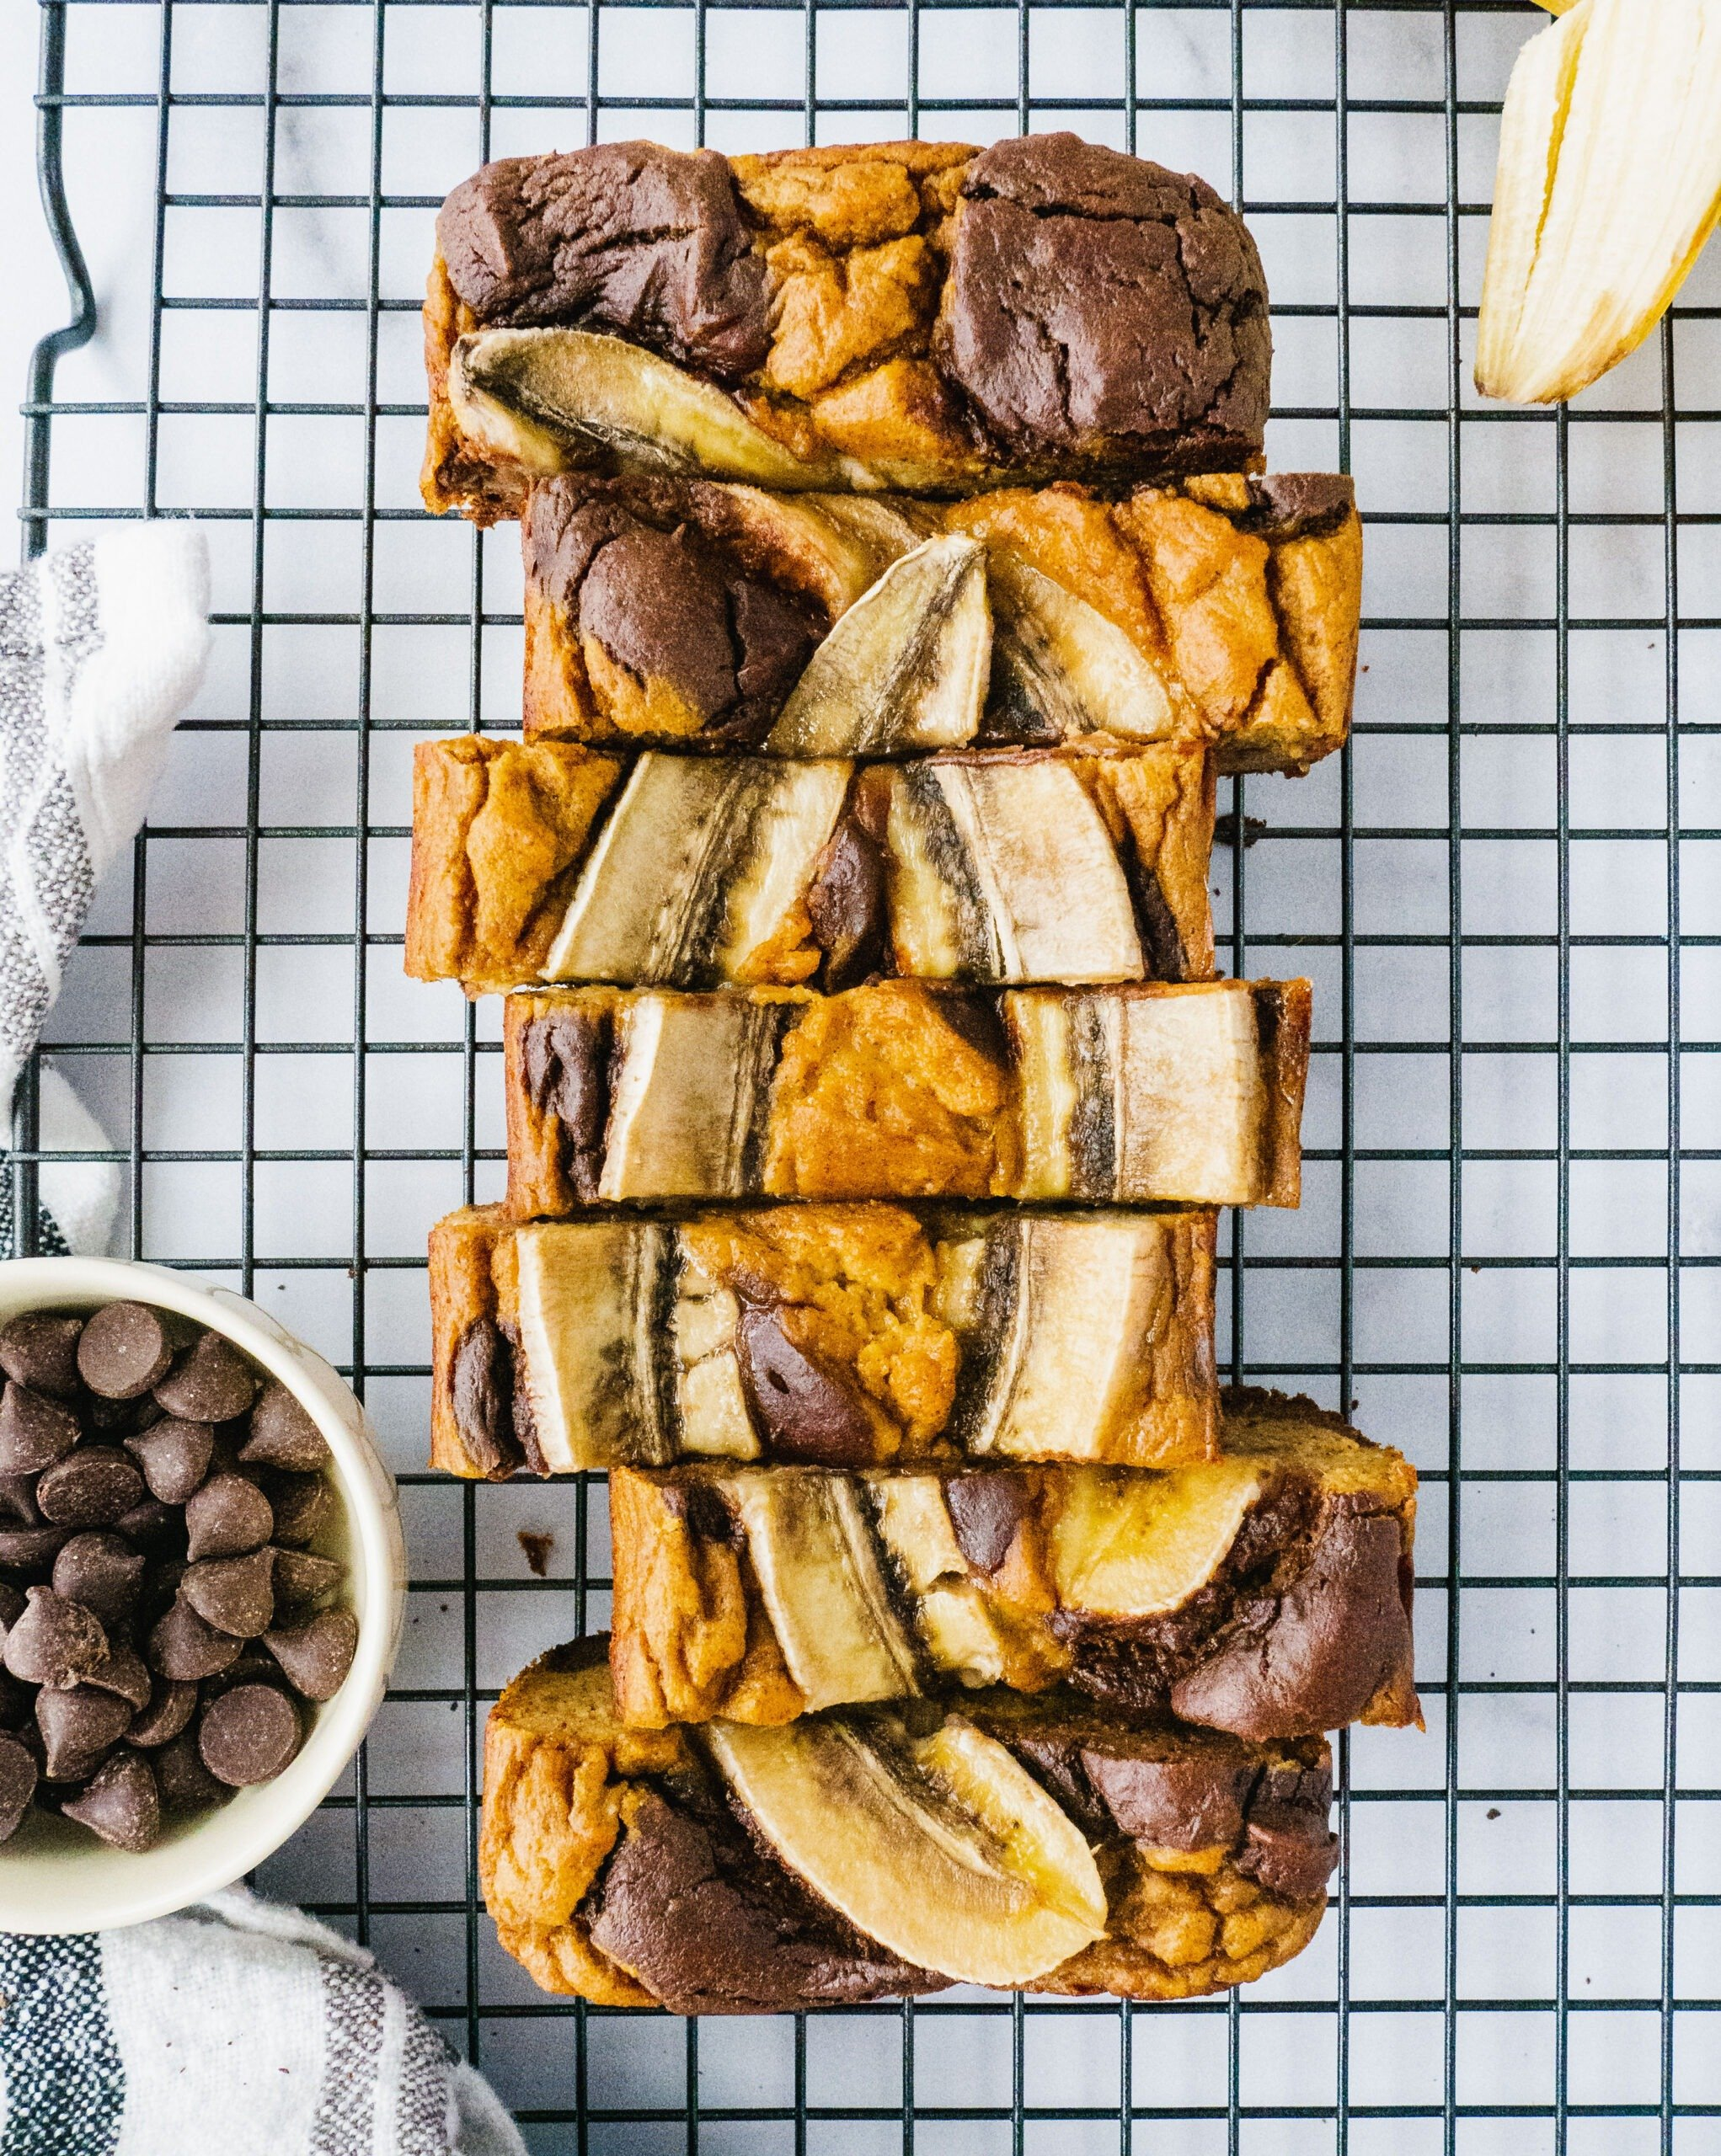 Paleo and gluten free brownie banana bread on a cooling rack with chocolate chip and baanana